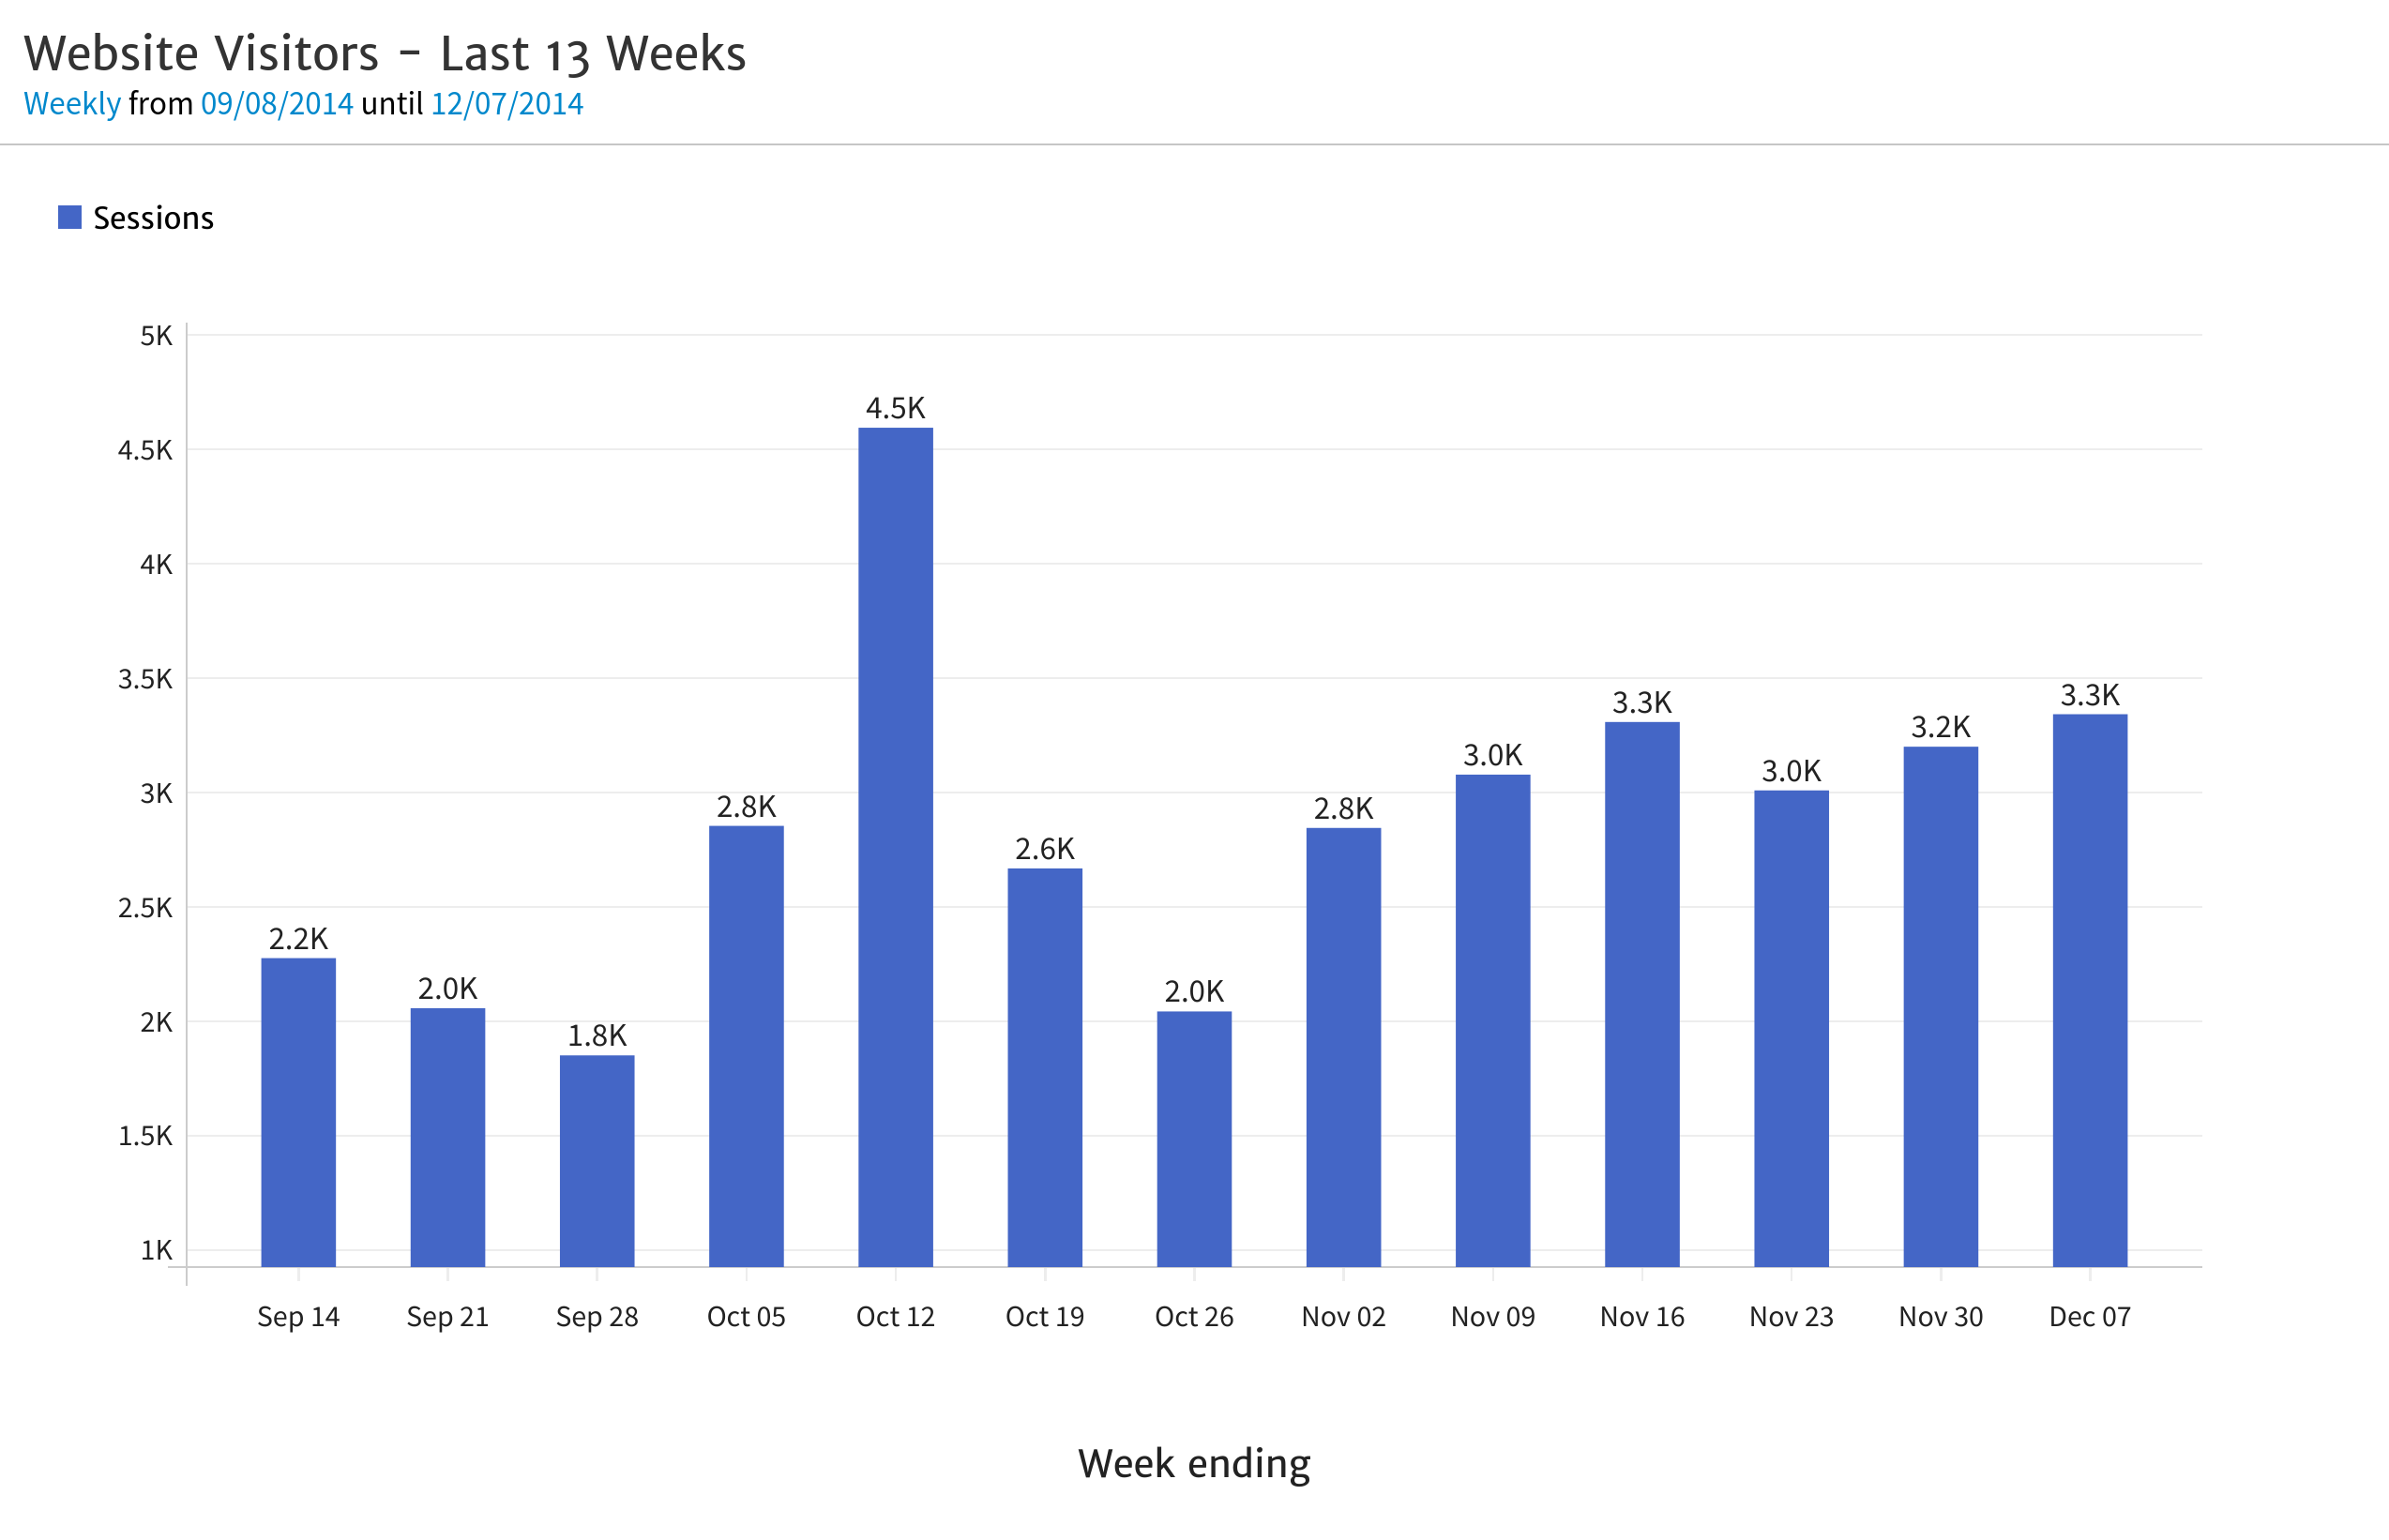 Megalytic Chart showing last 13 weeks sessions